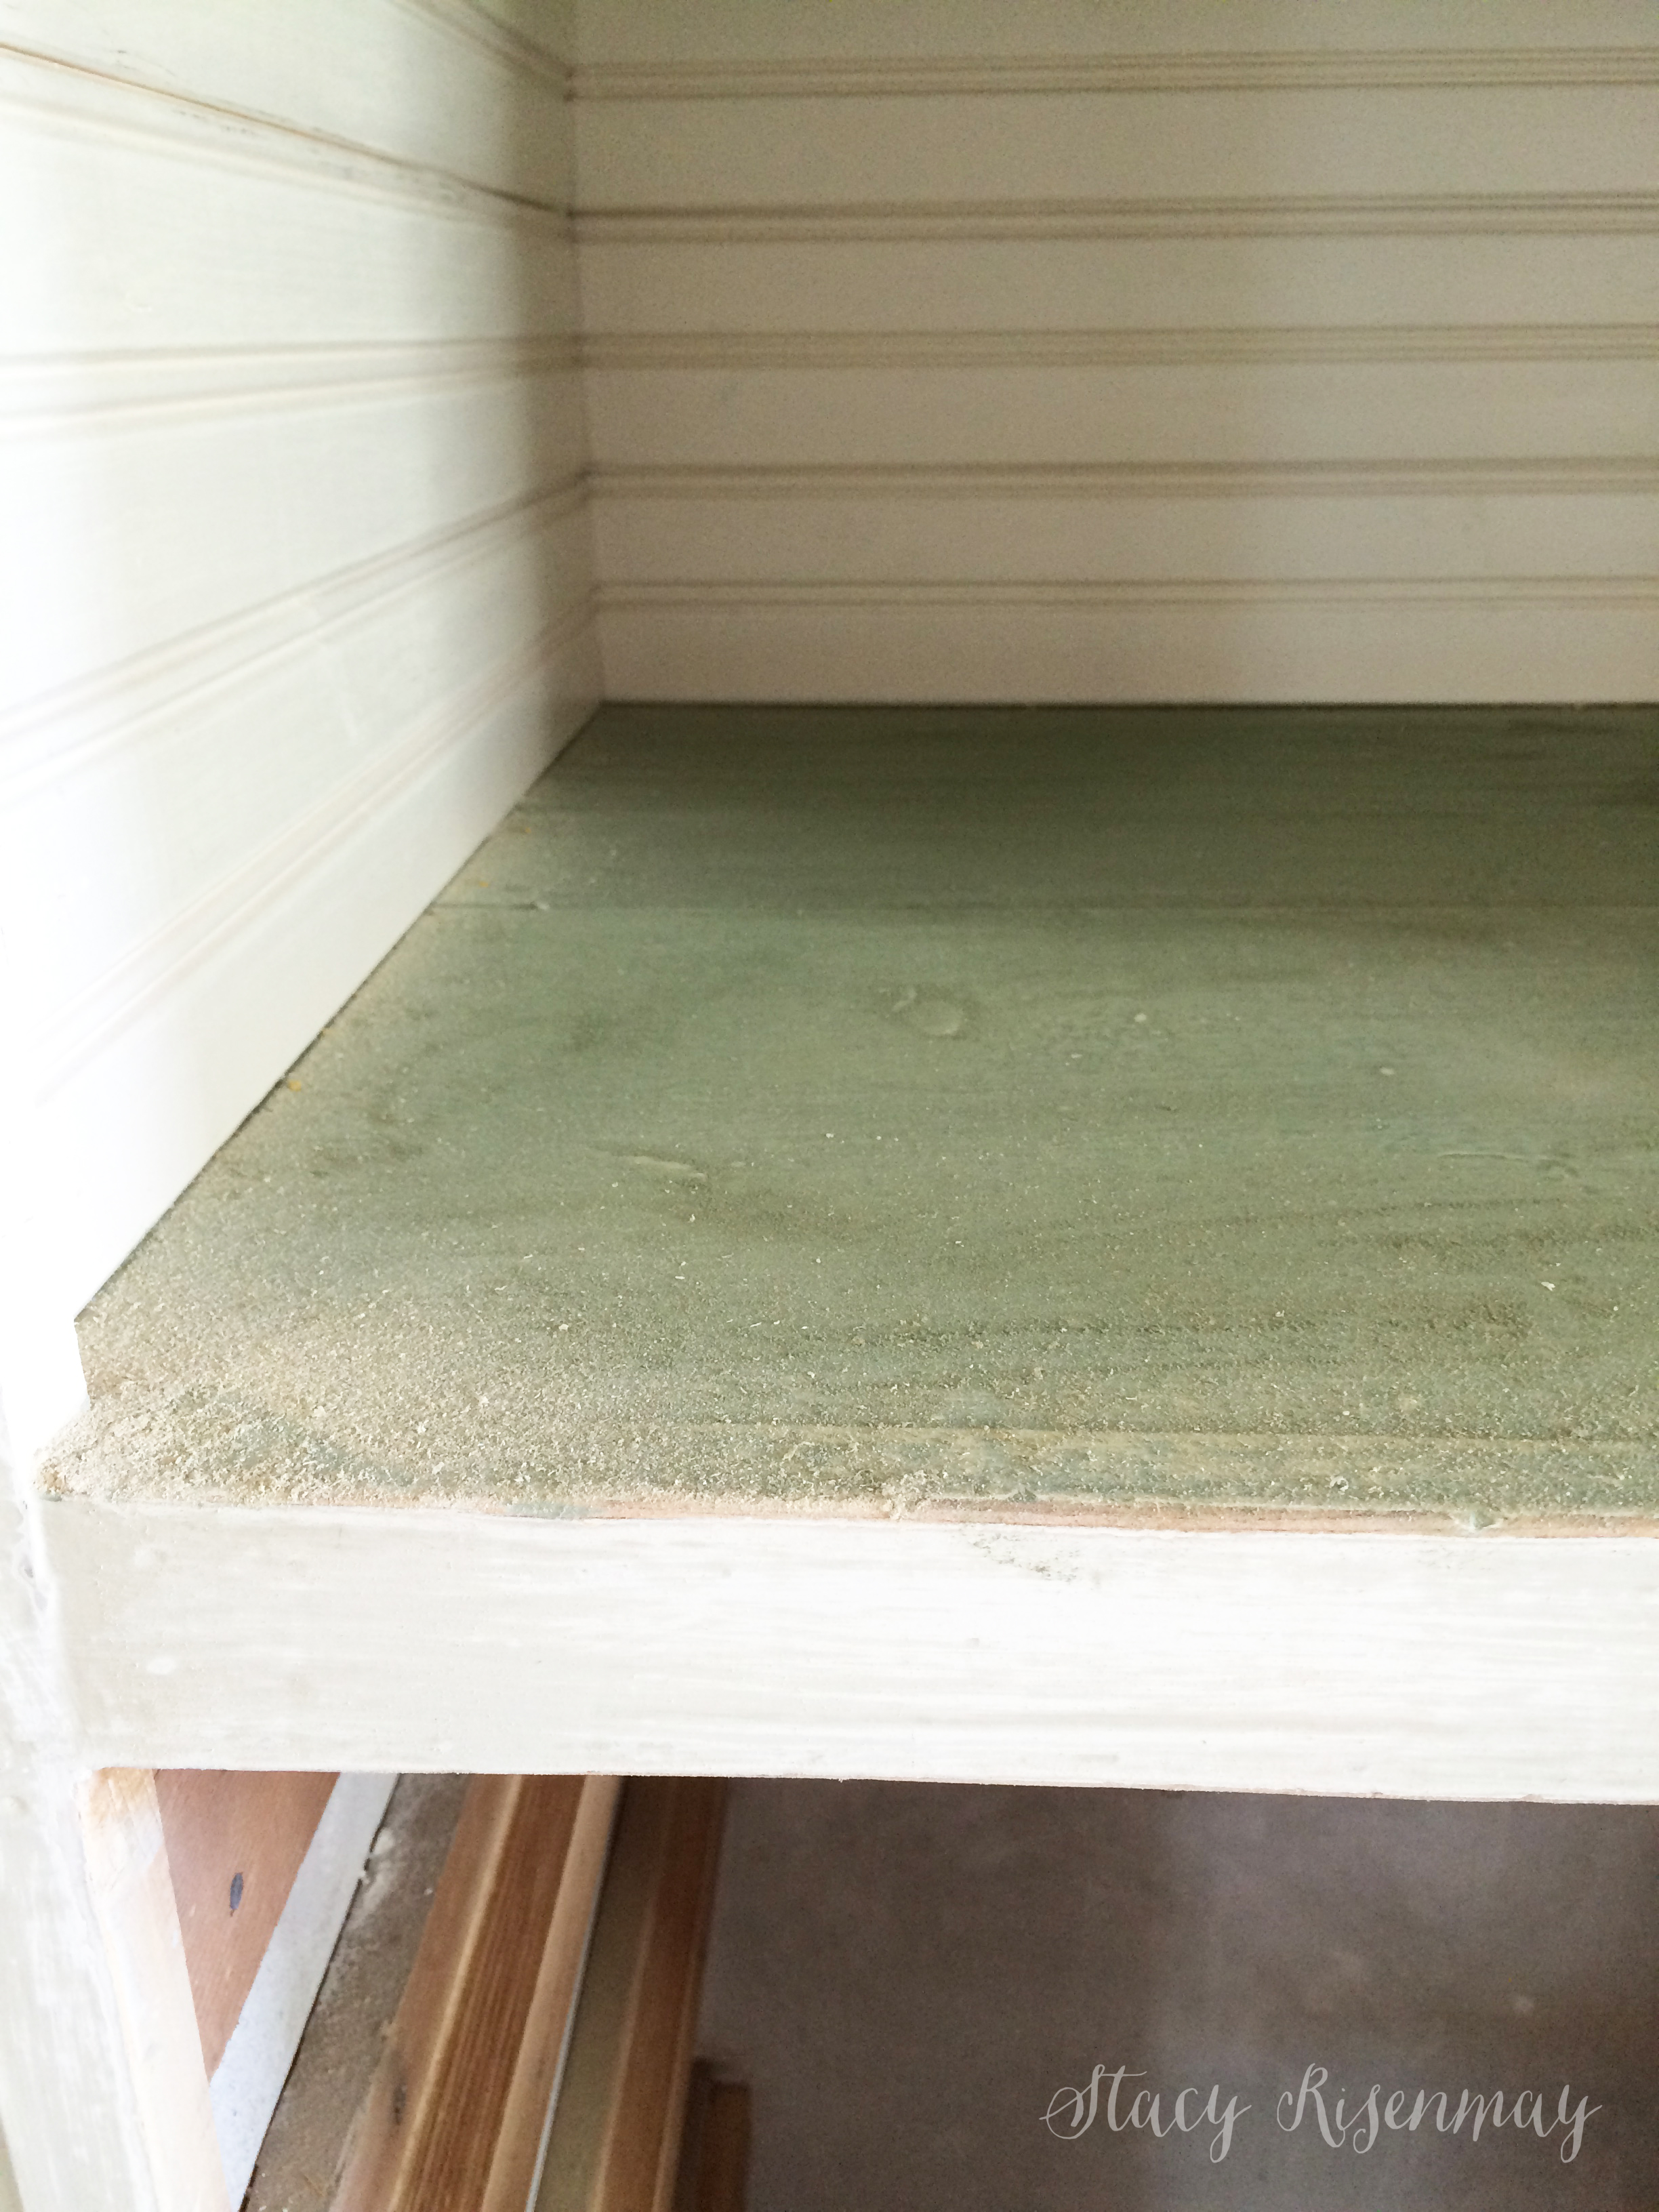 sanding in preparation to paint